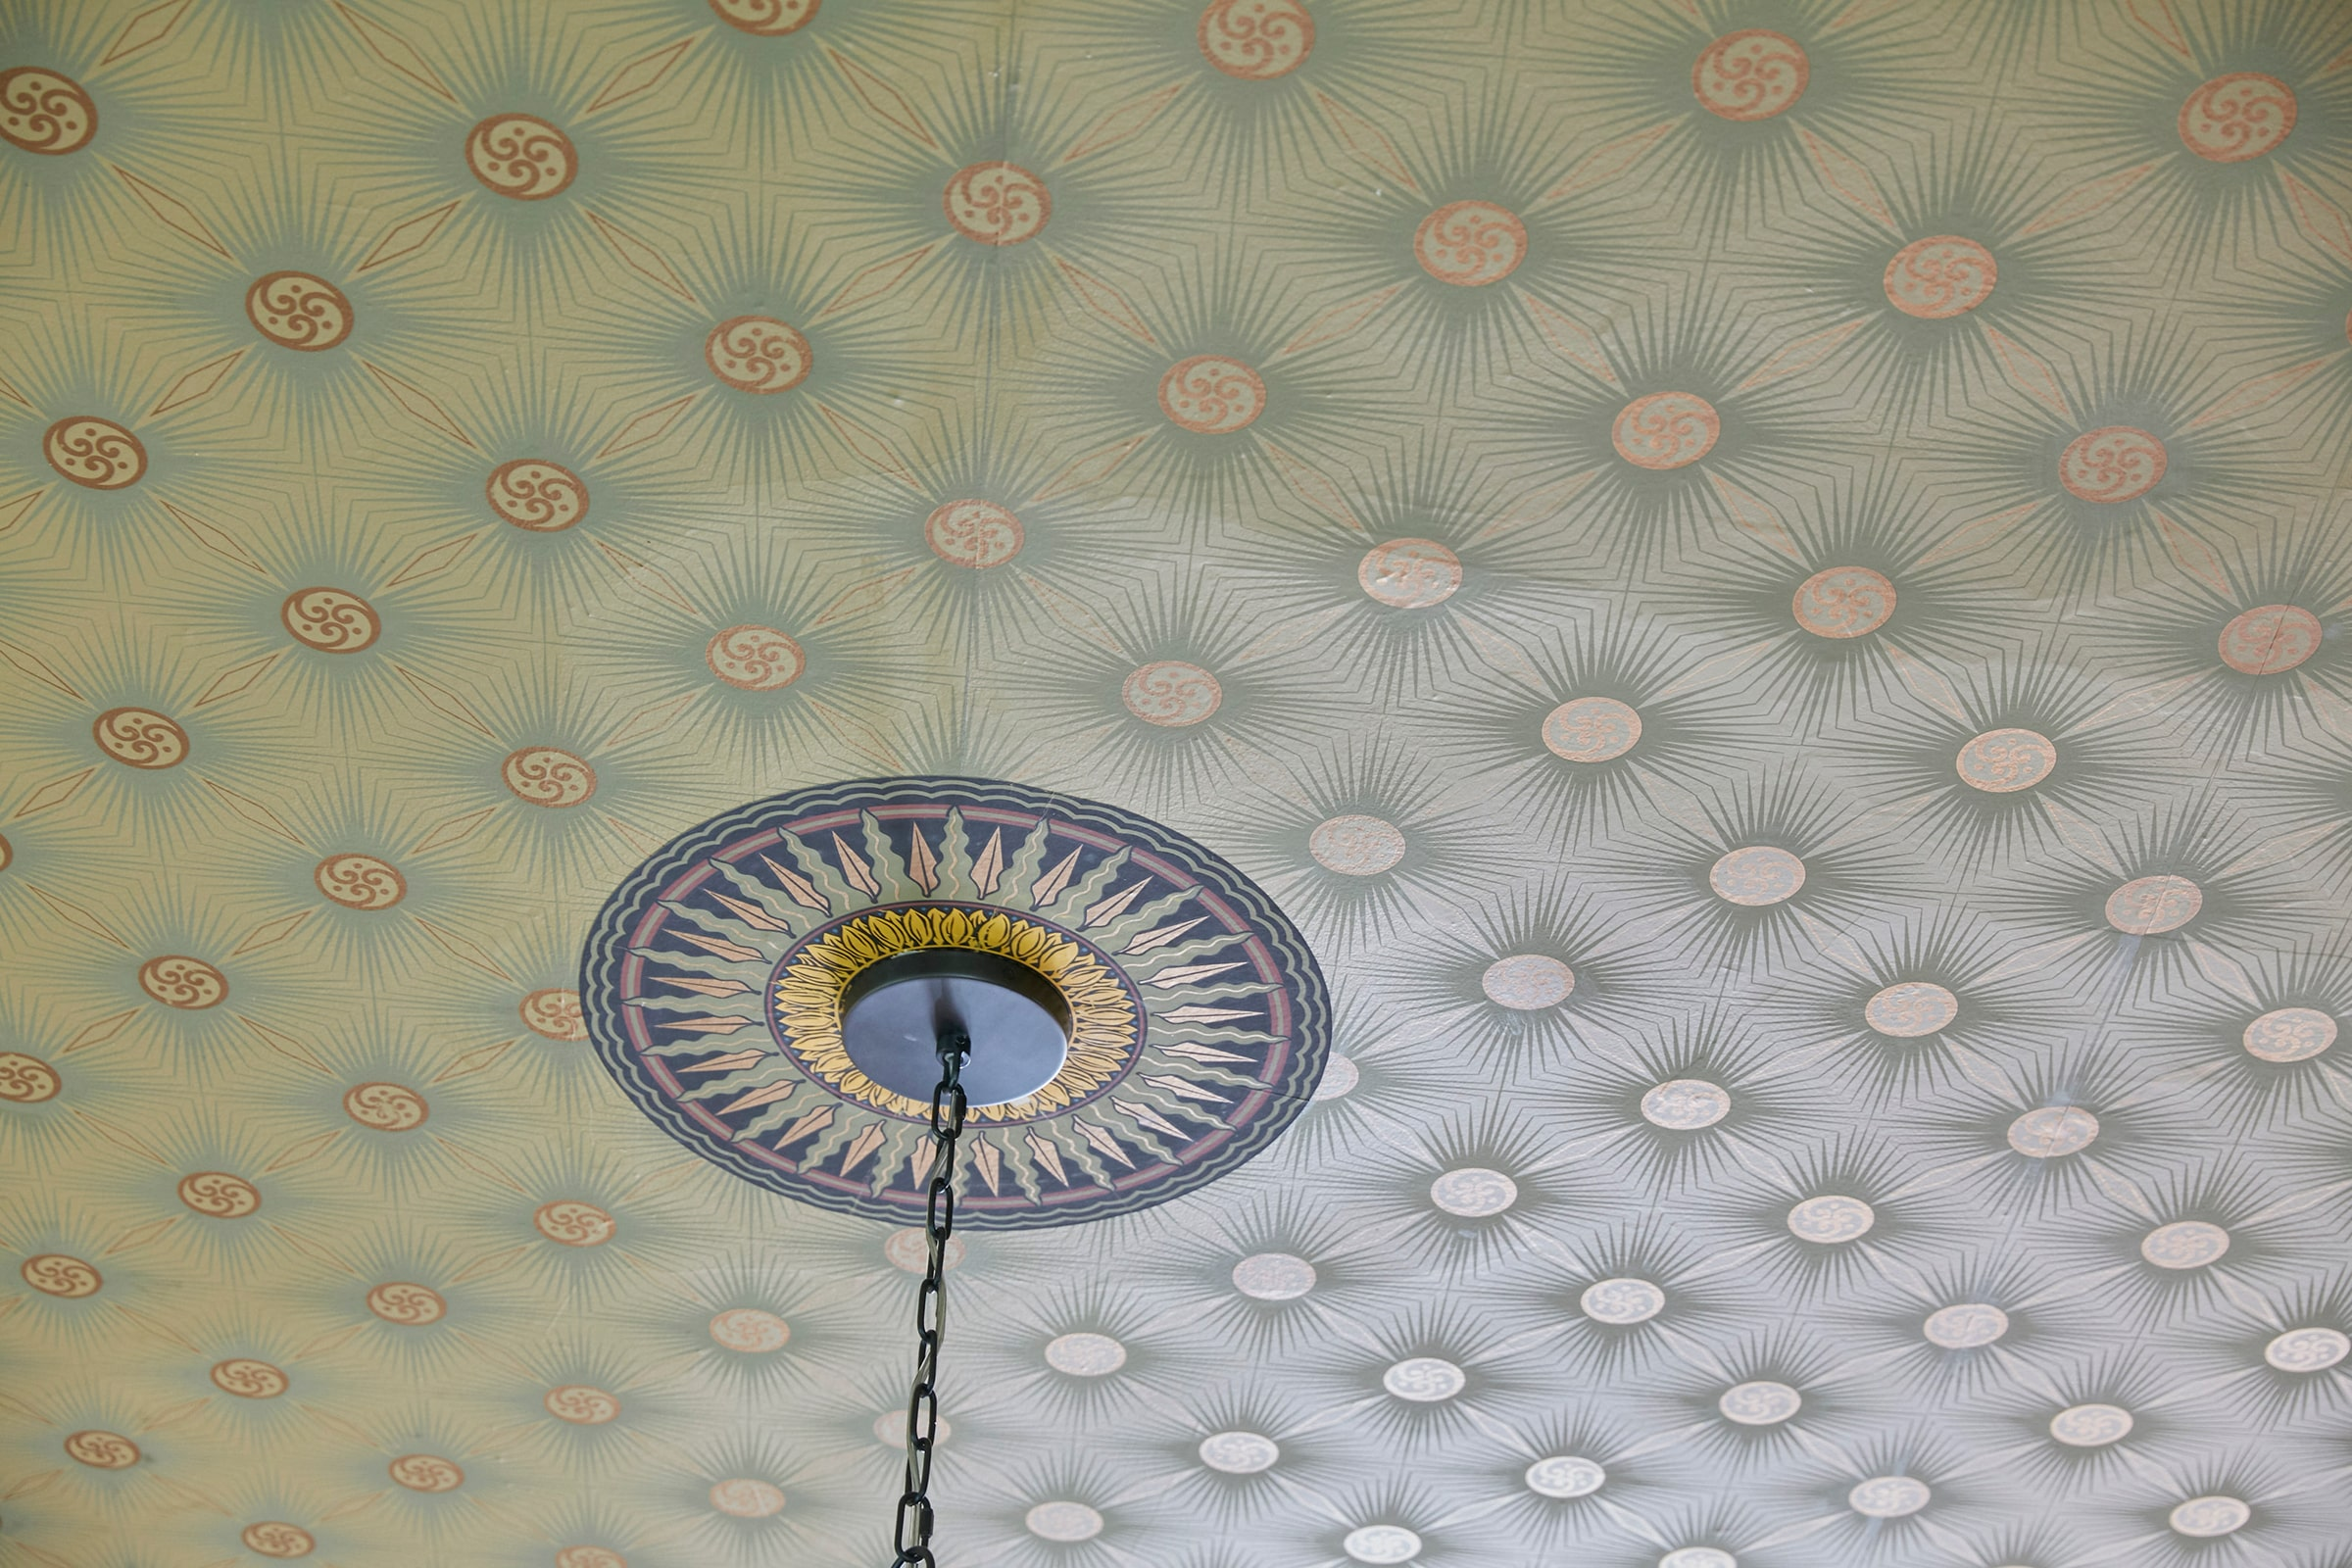 detail of patterned ceiling paper and light fixture